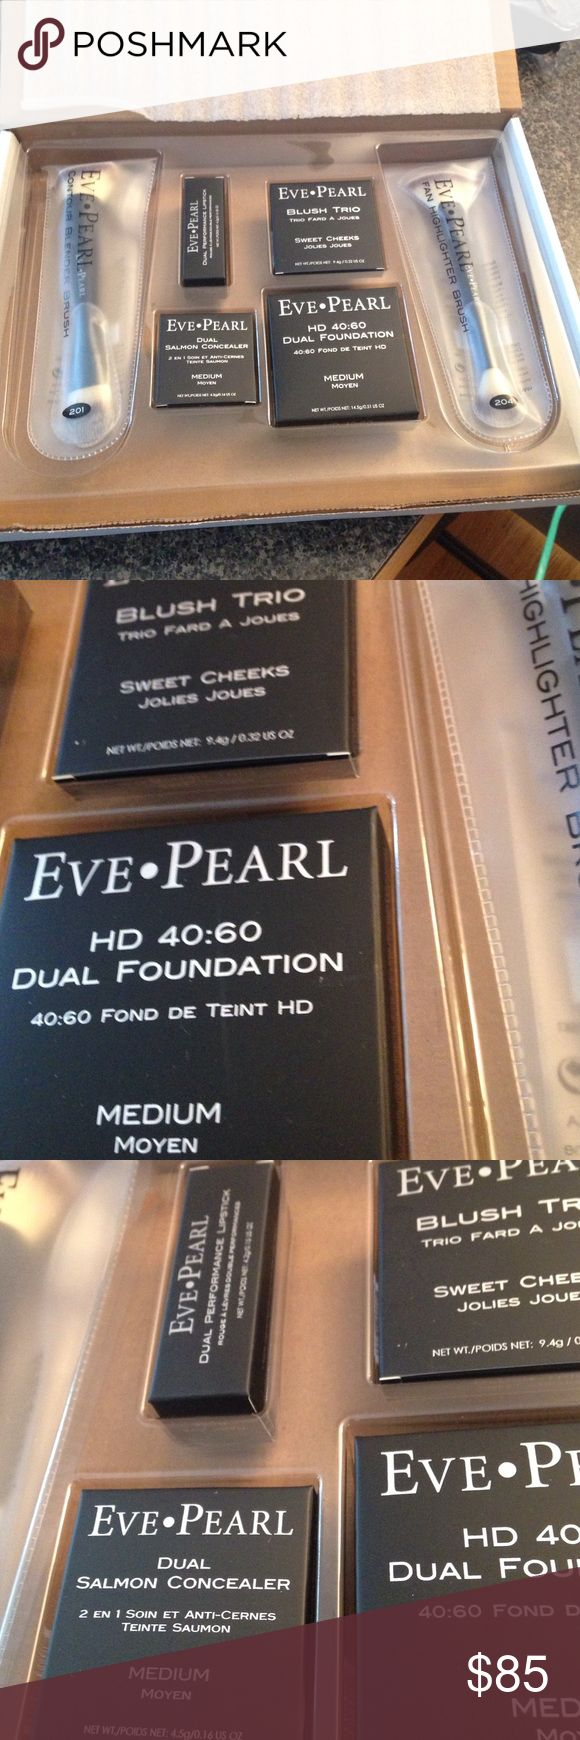 Eve Pearl Makeover kit. Sold out on QVC Brand new. No longer available $268 value sold  separately. Eve Pearl Makeup